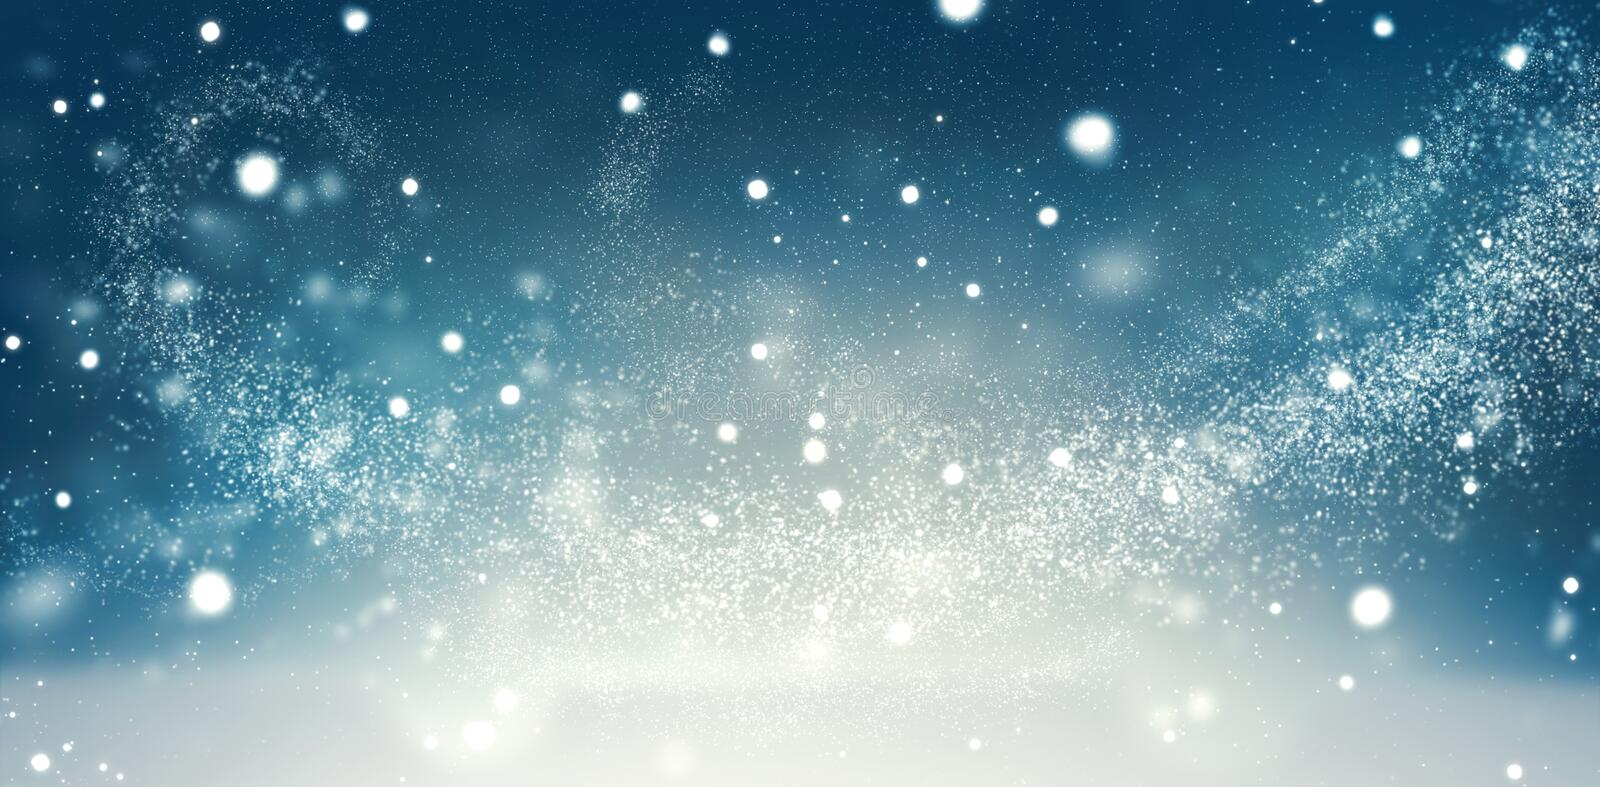 Beautiful Christmas winter snow background. Beautiful Christmas winter holiday snow background stock illustration